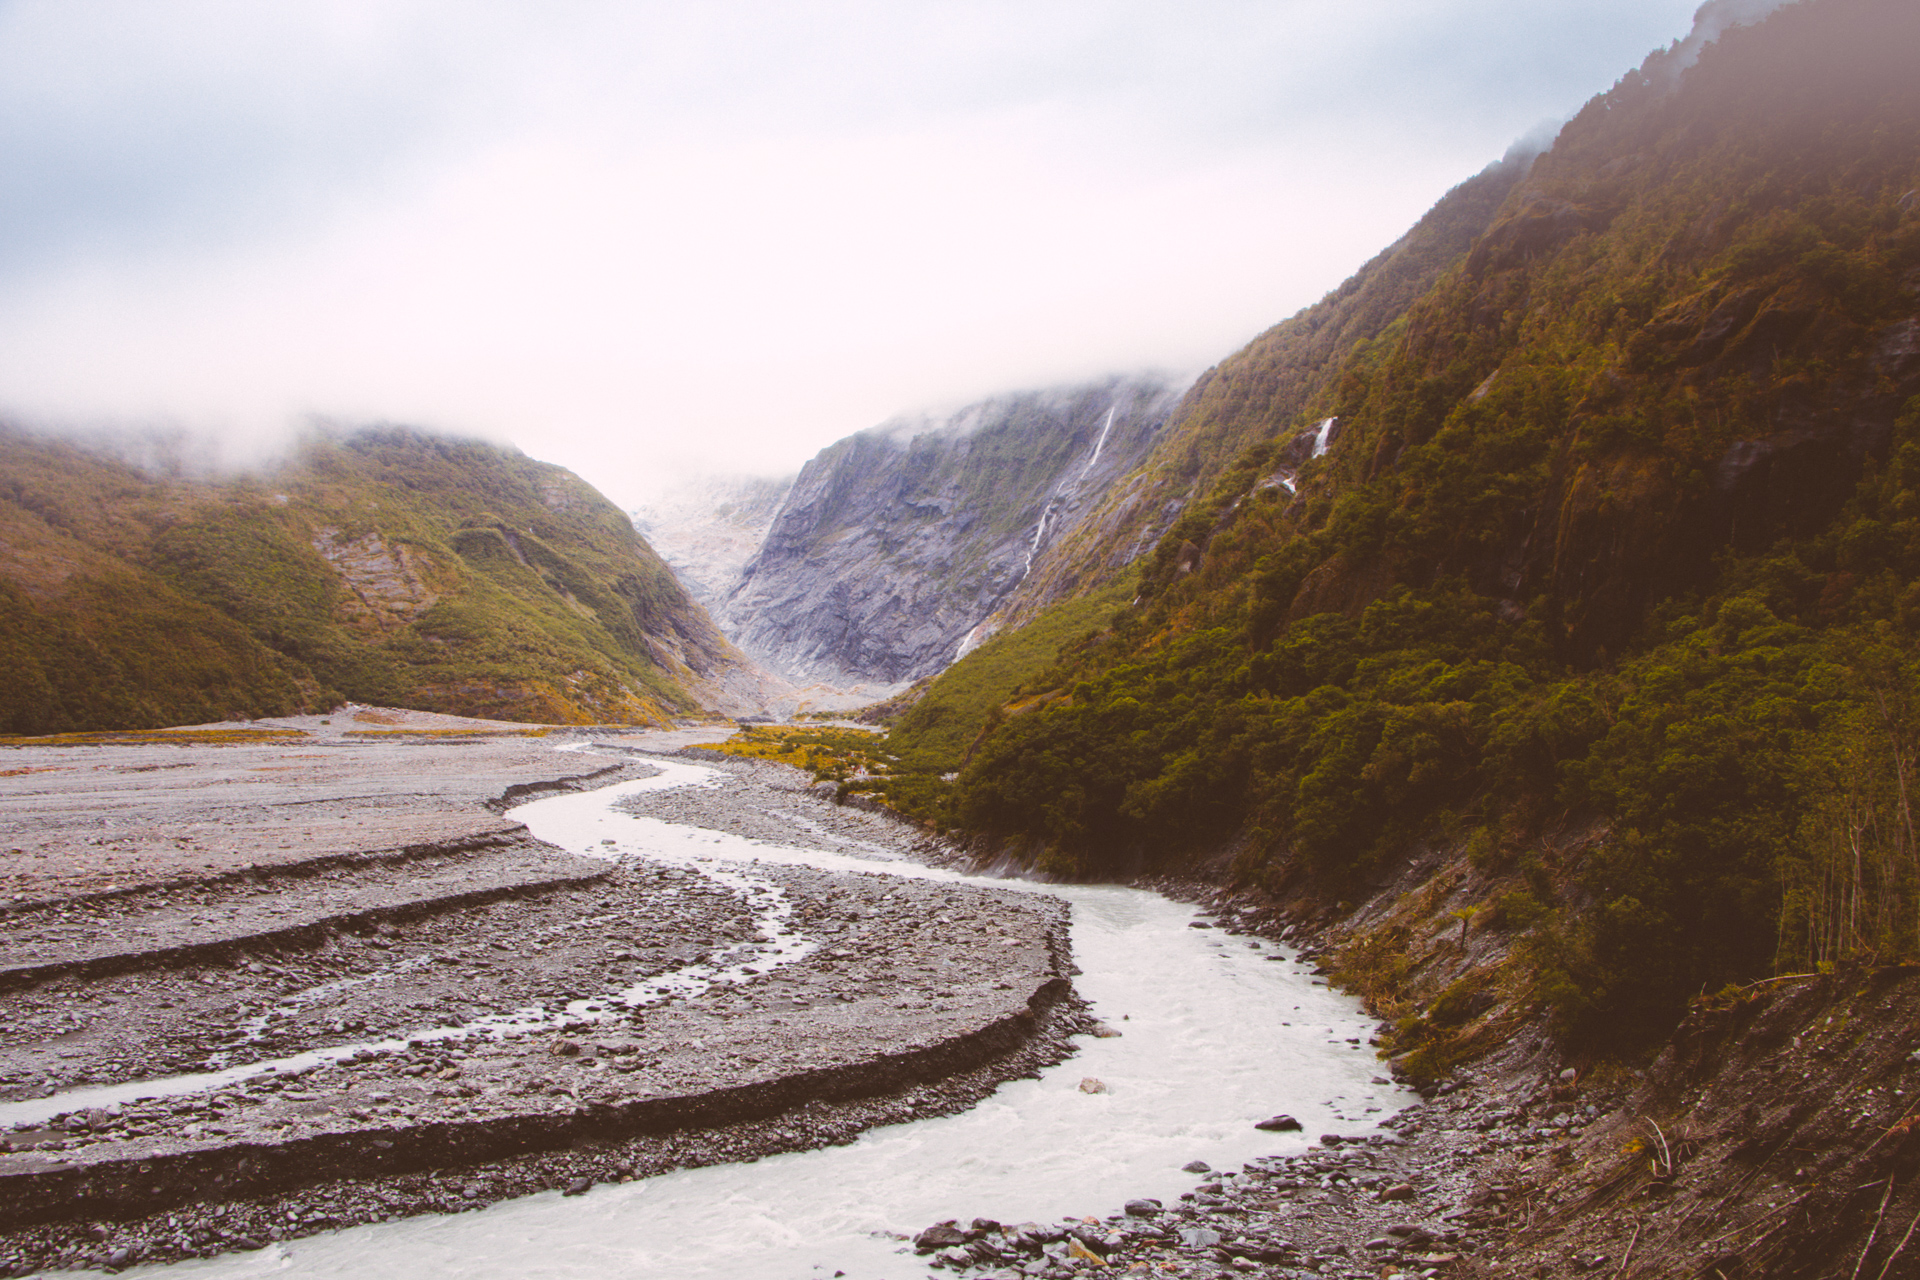 River from Franz Josfer Glacier